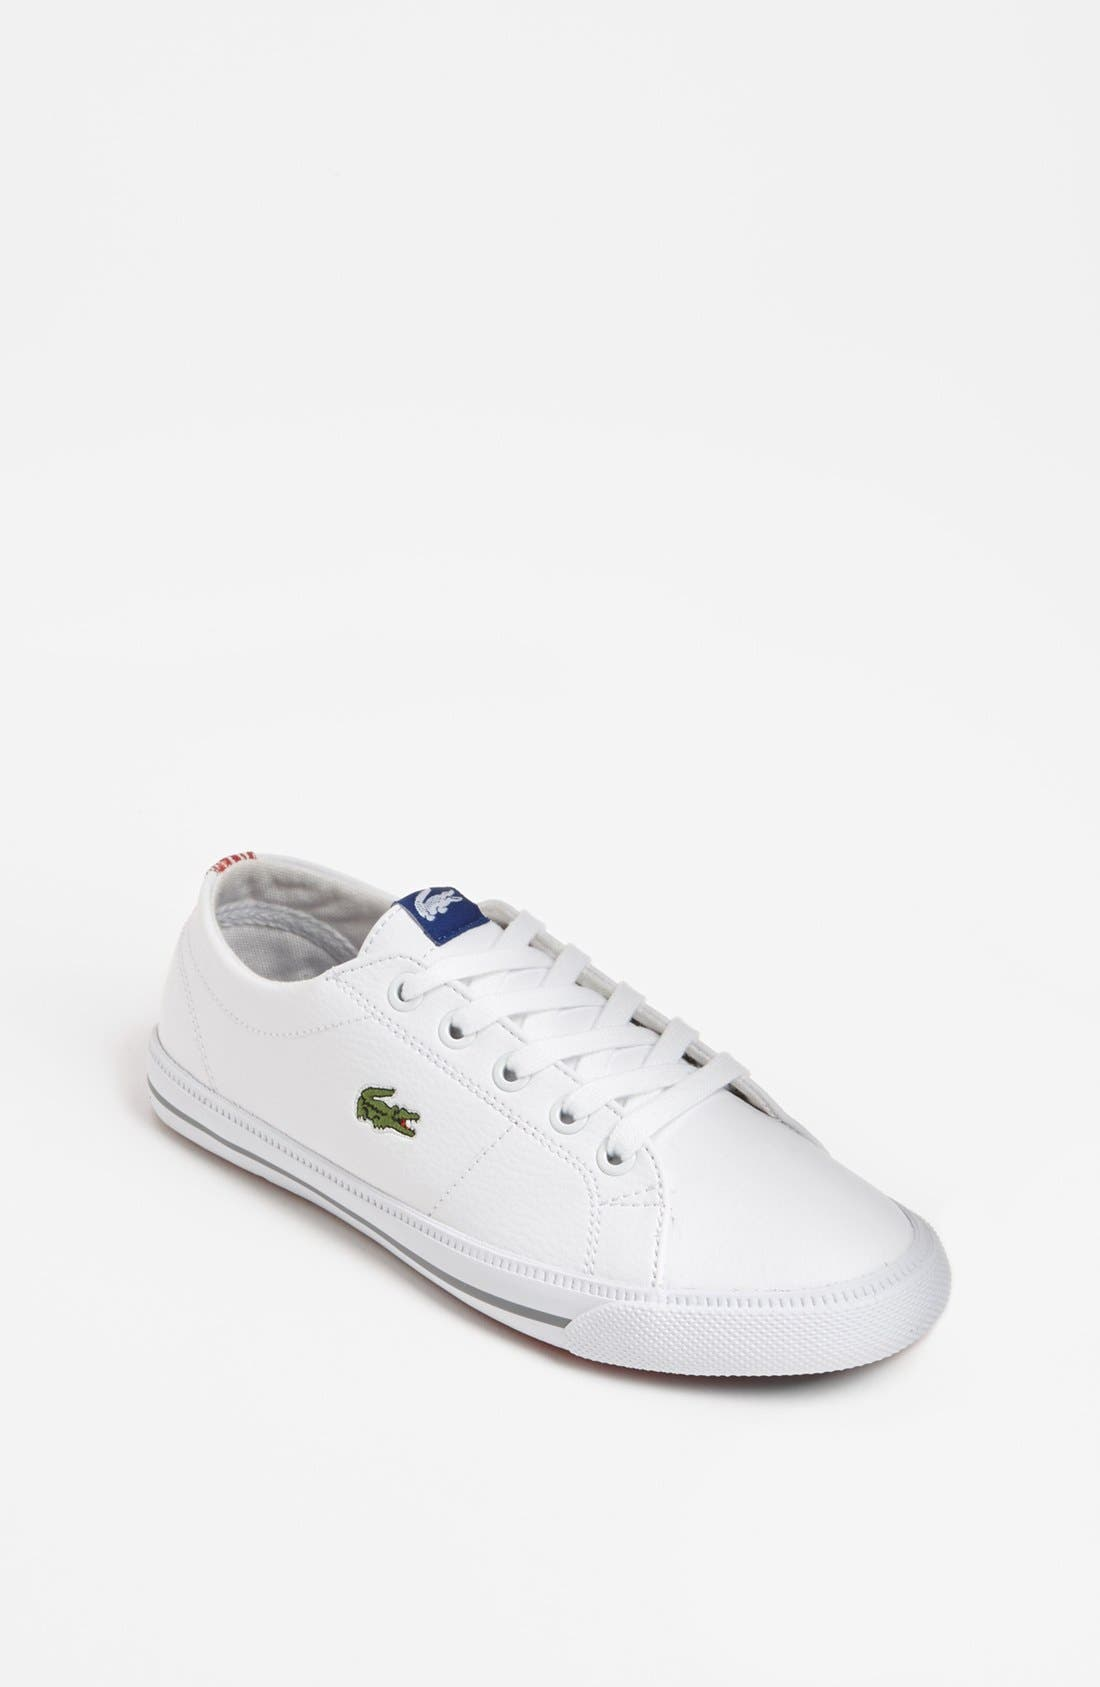 Main Image - Lacoste 'Marcel' Sneaker (Toddler & Little Kid)